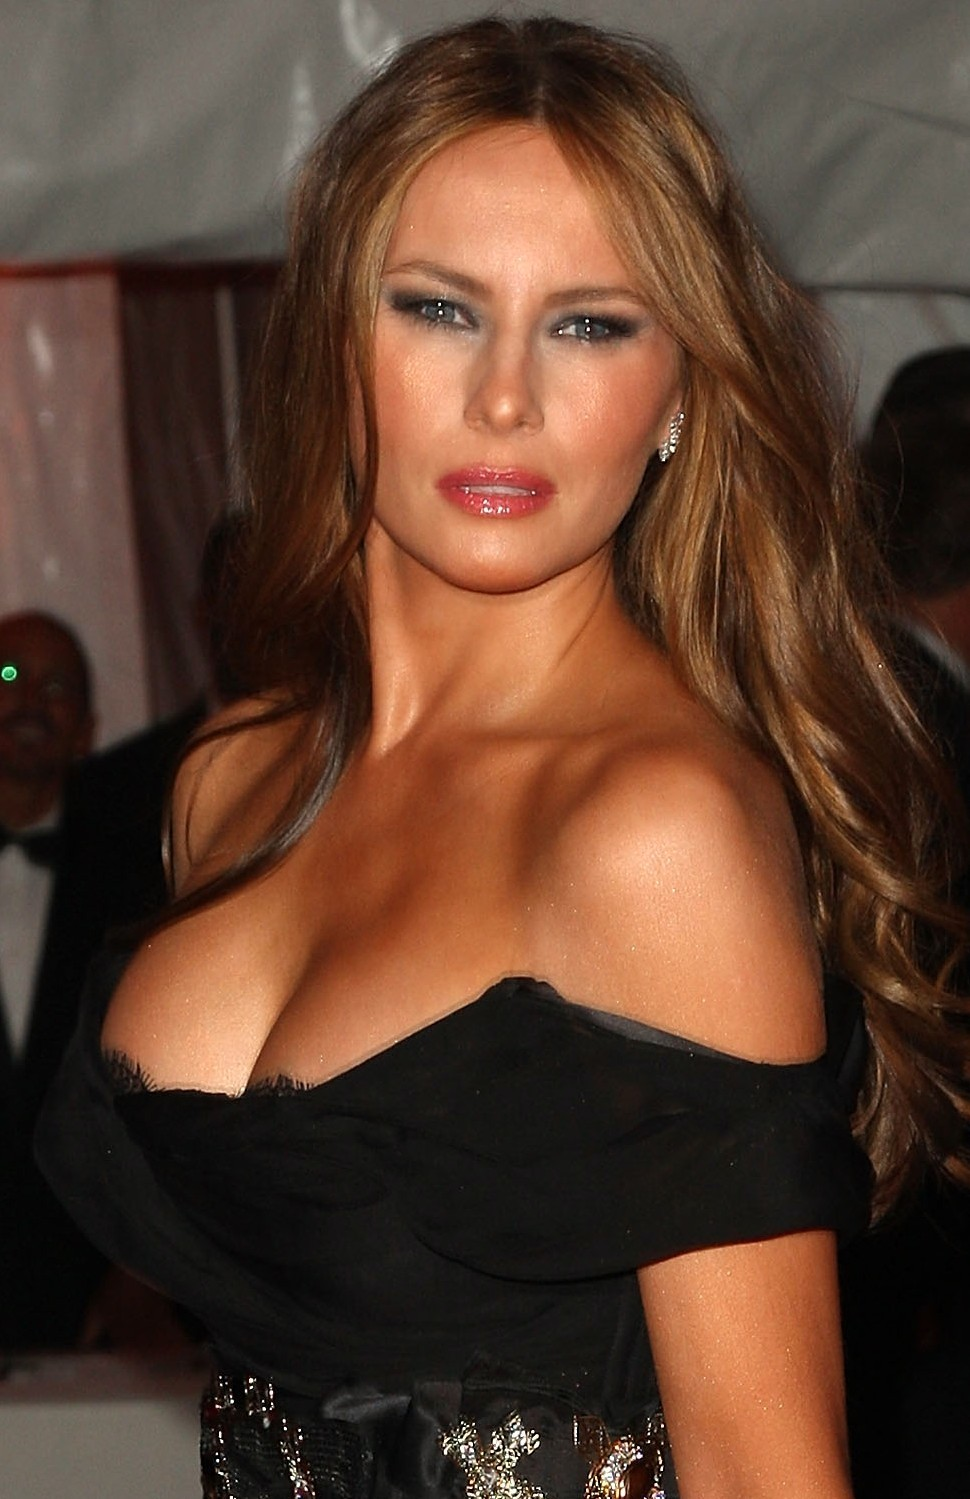 The First Lady Naked